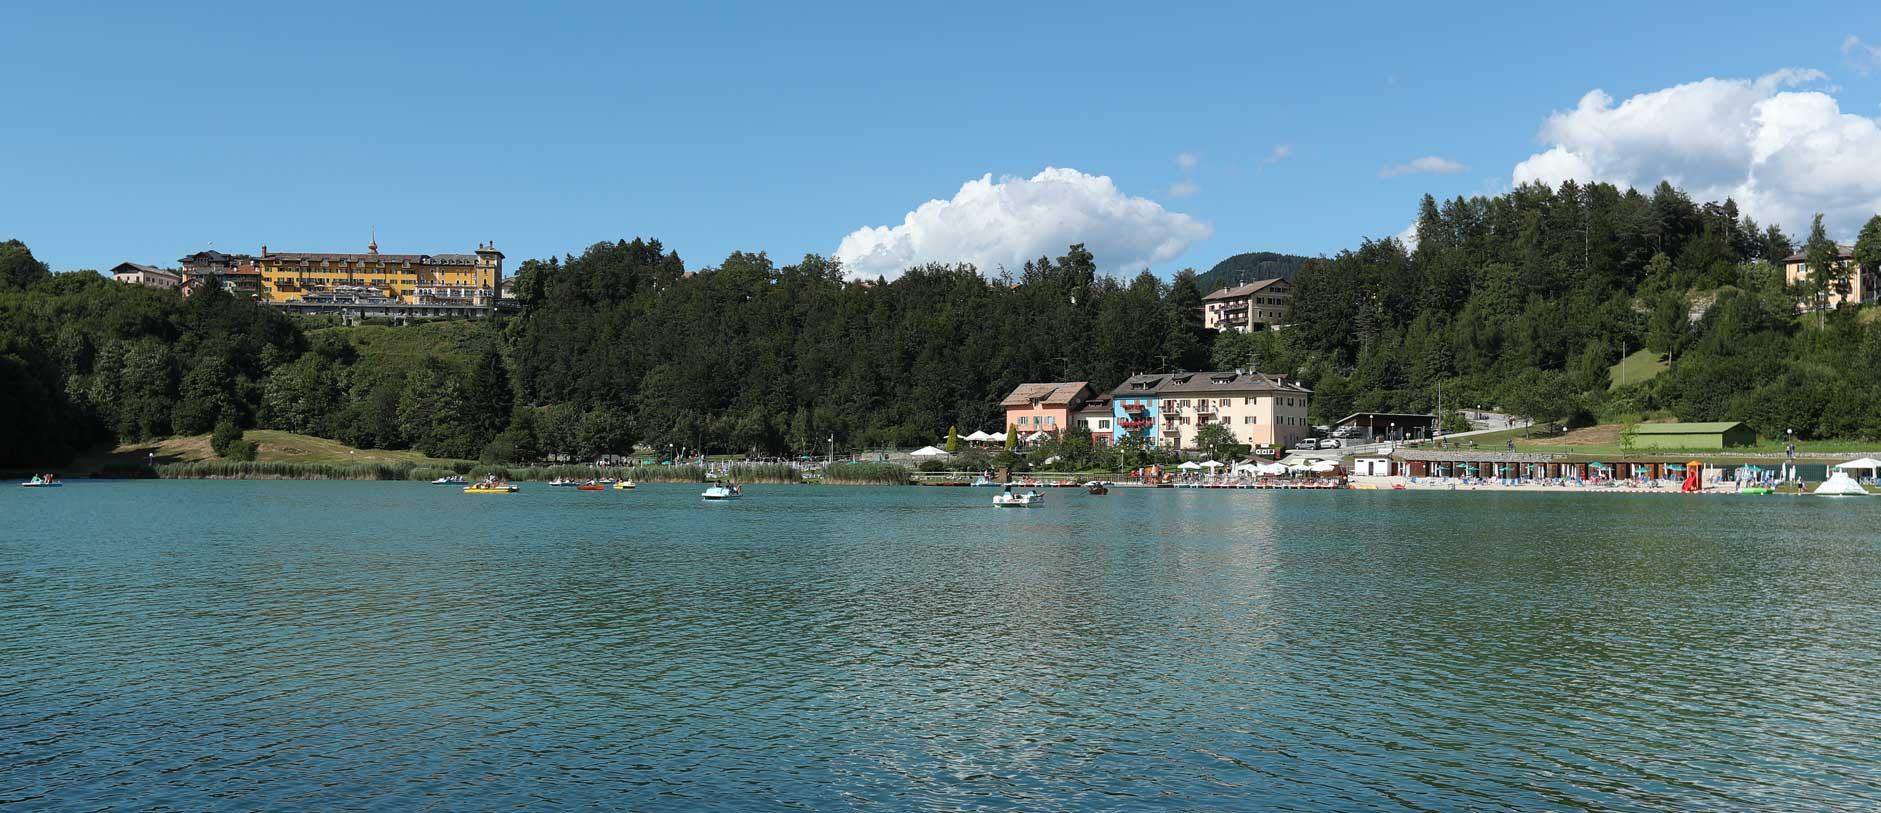 A dip in the water on a hot summer's day, the lake has been awarded the Blue Flag and is a stone's throw from the hotel. Relaxation and wellness  in the Hotel Bertoldi near the lake of Lavarone